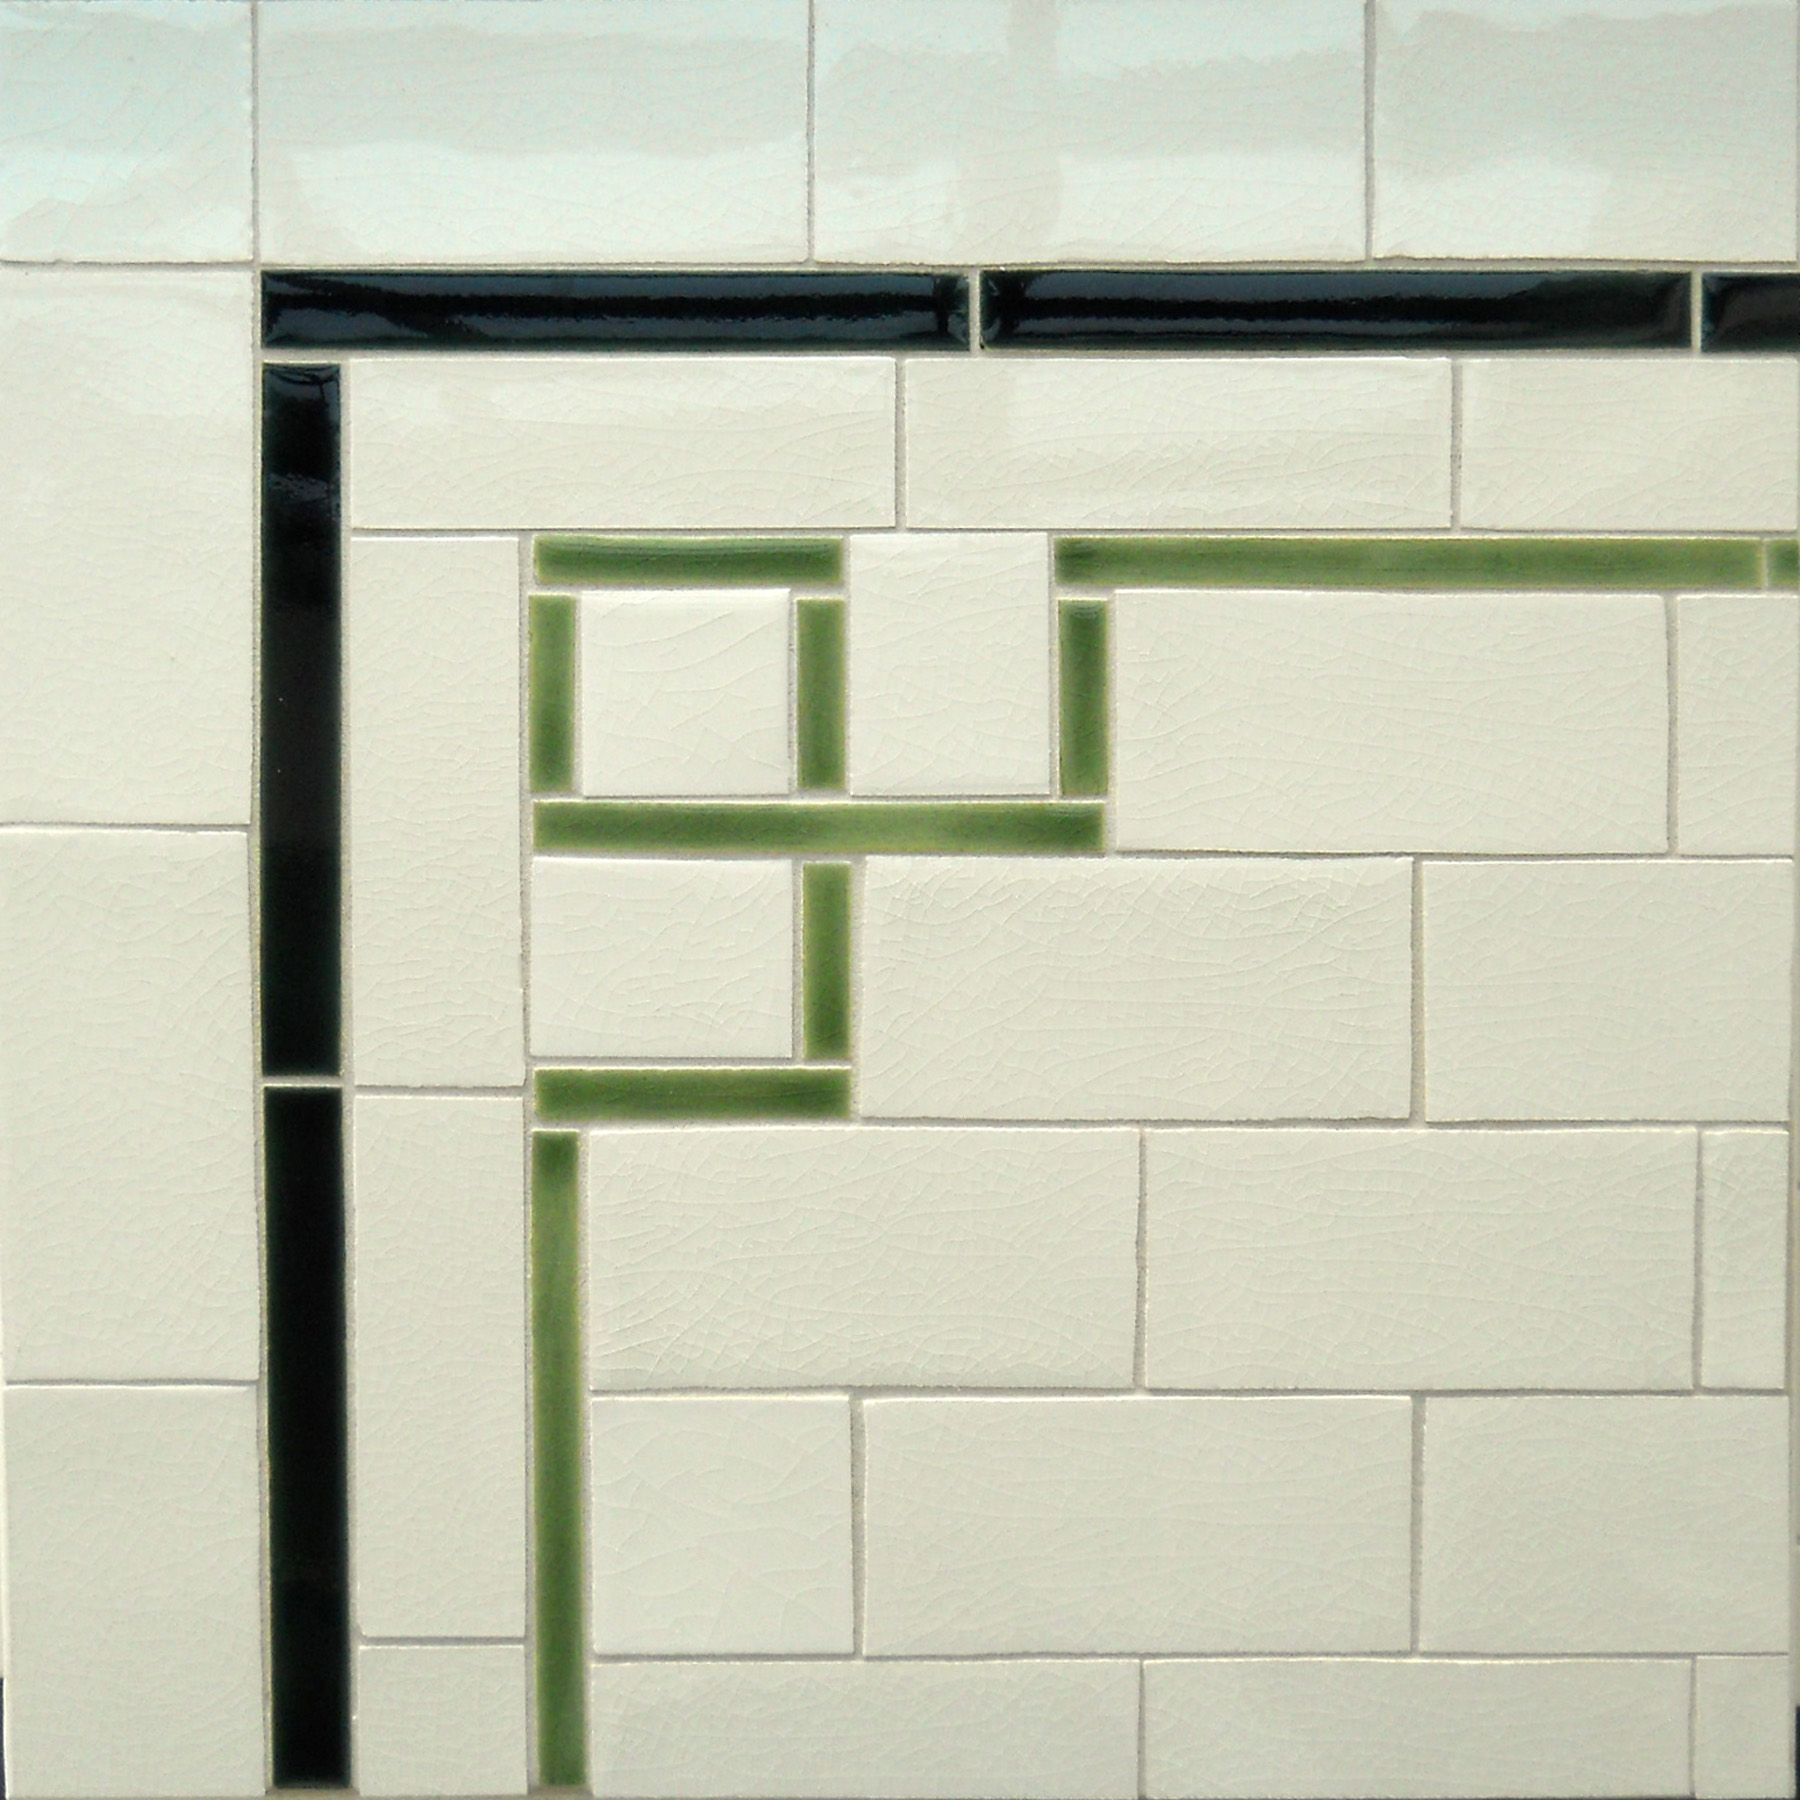 Add a fancy corner detail to dress up your subway tile … | Kitchen ...